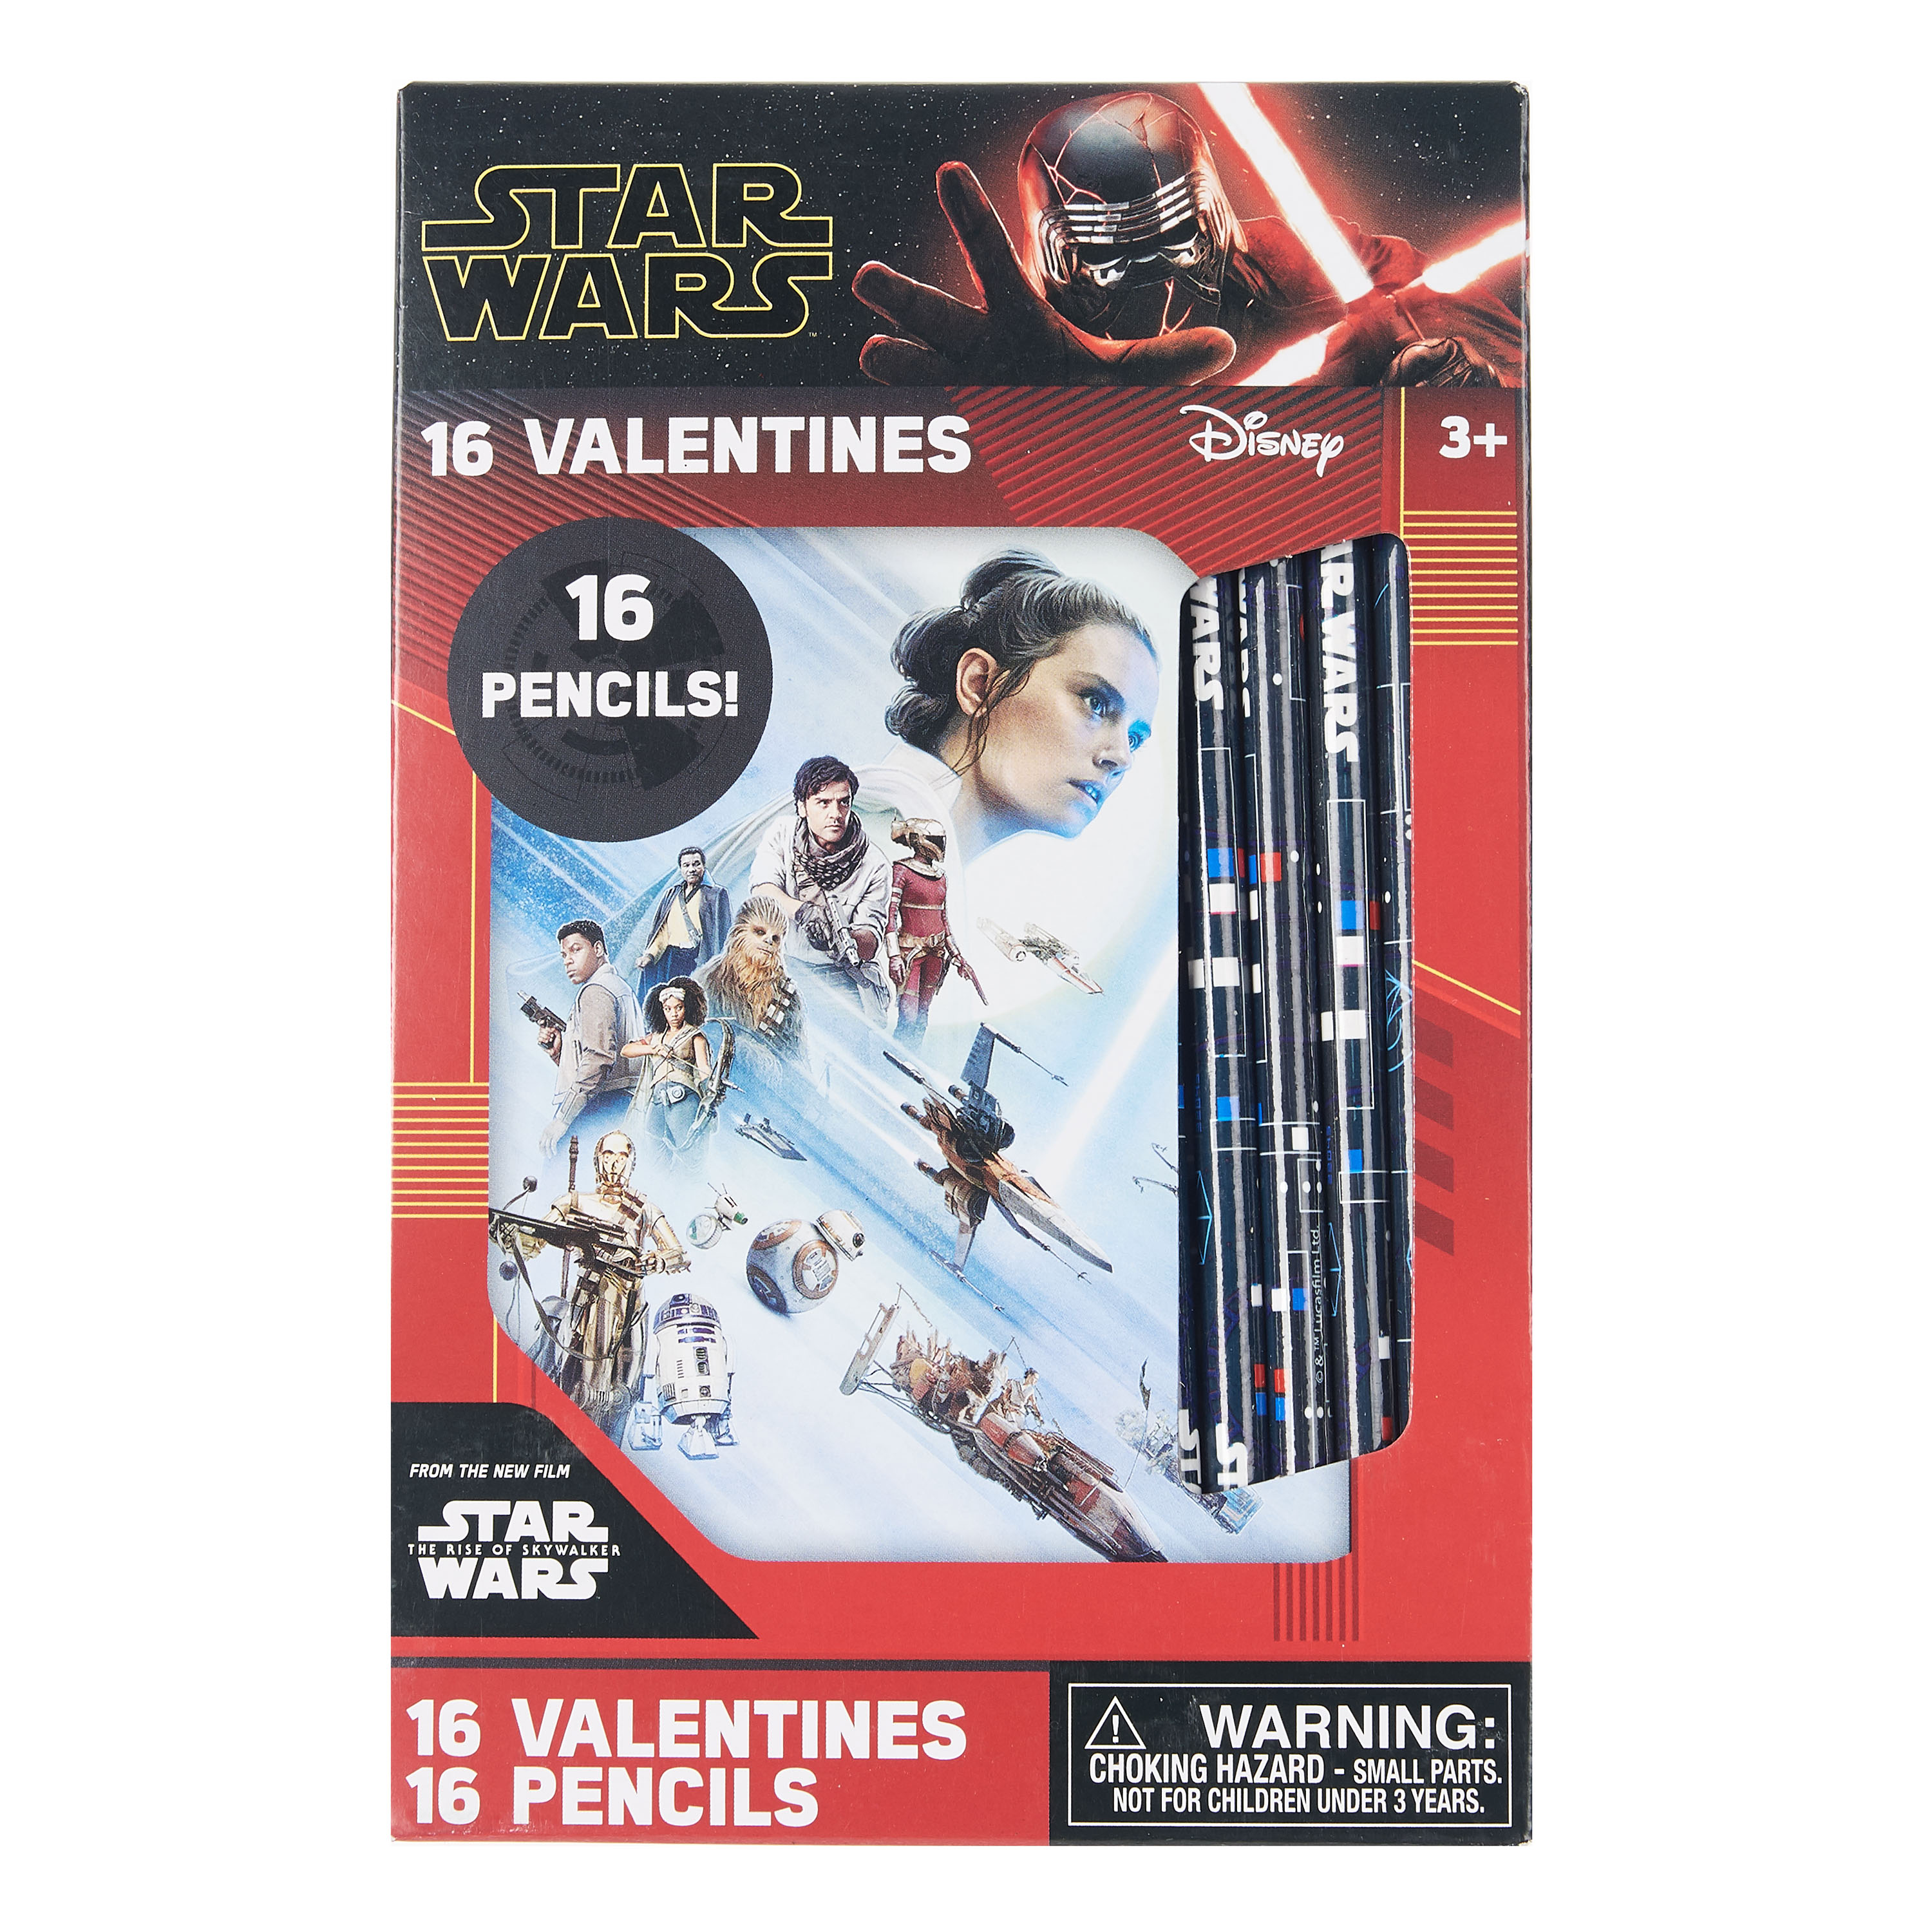 TROS Valentines With Pencils Set 1